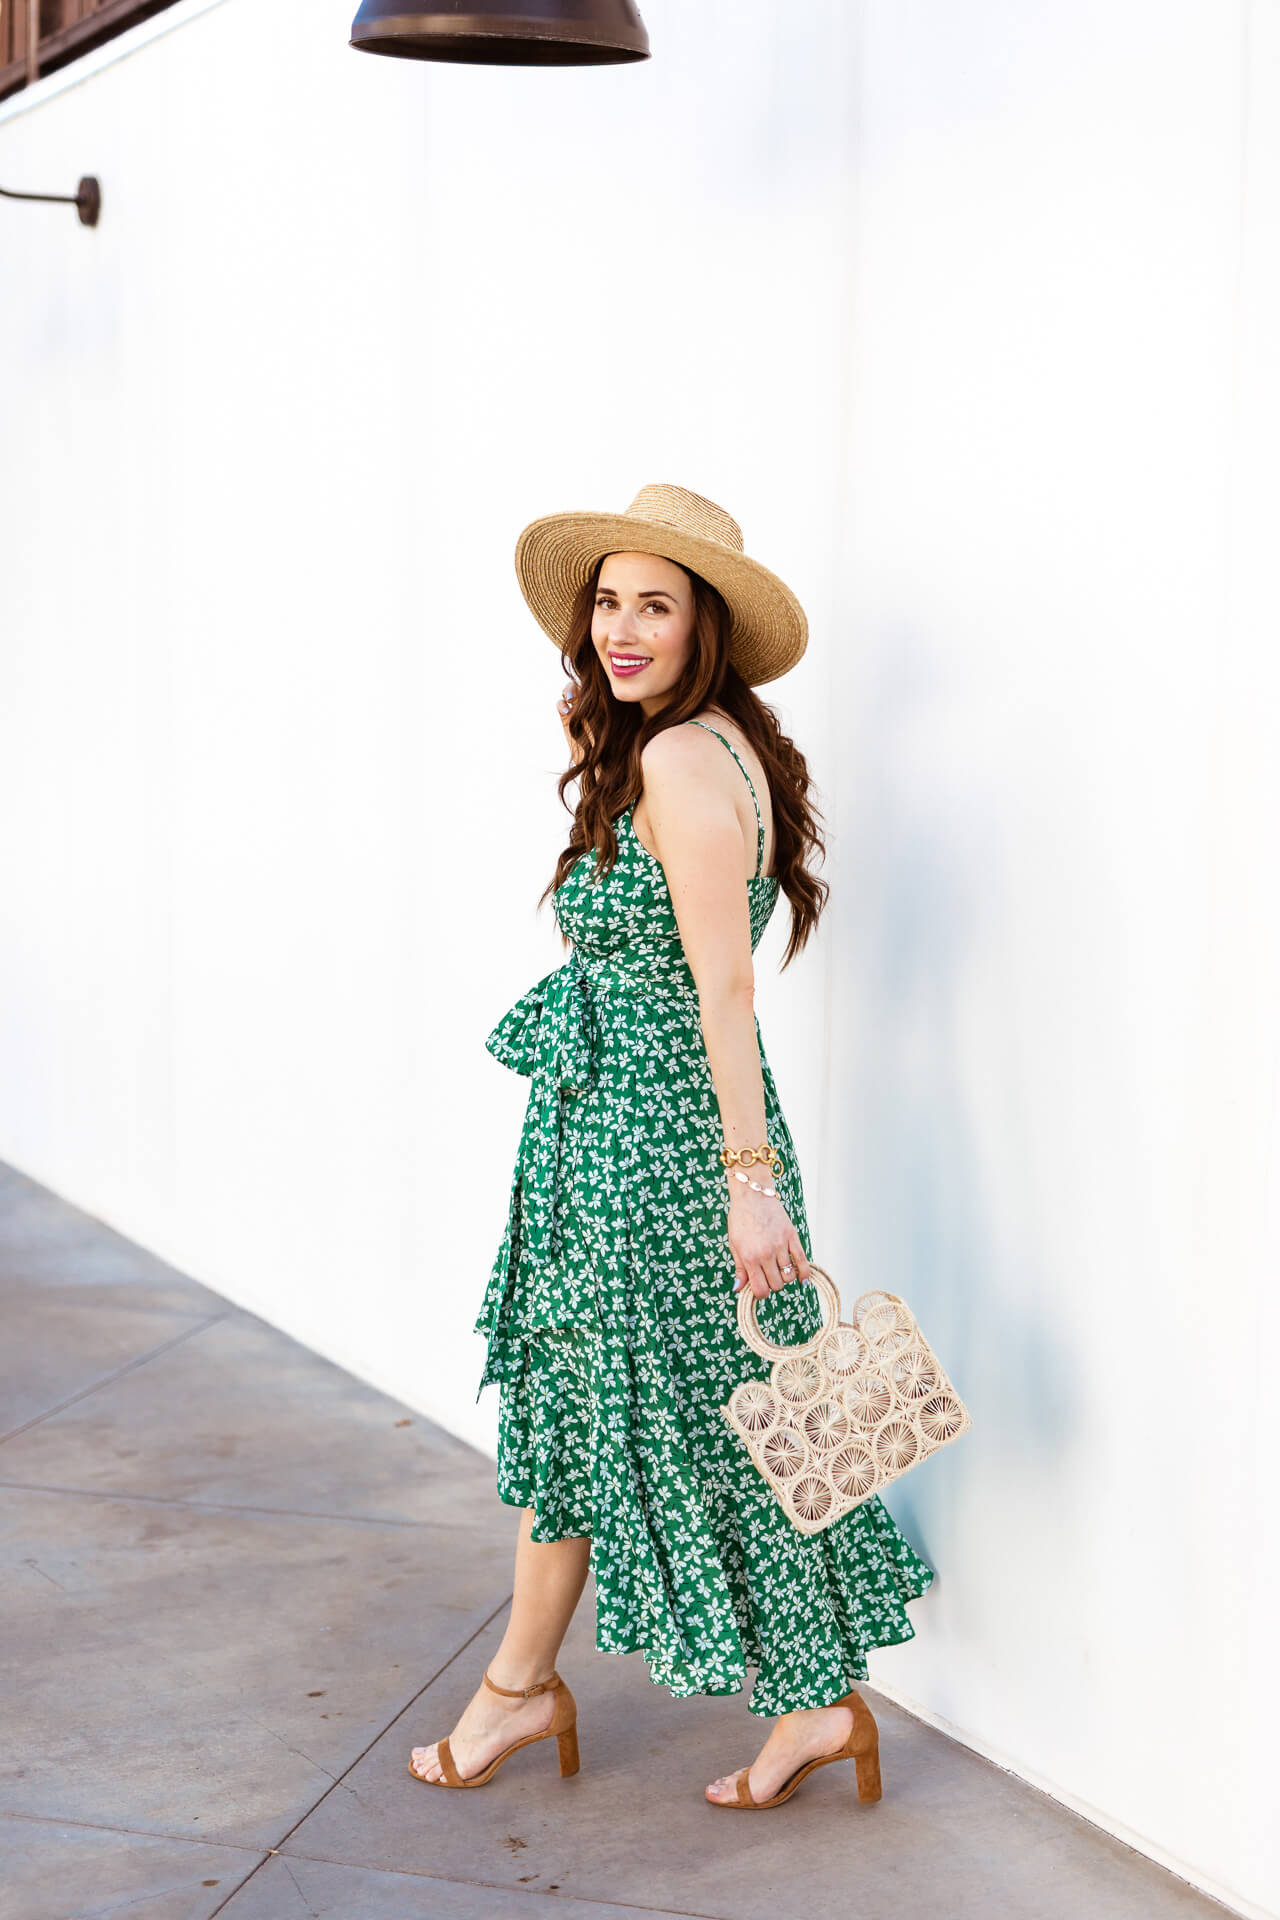 The prettiest green floral dress! - M Loves M @marmar